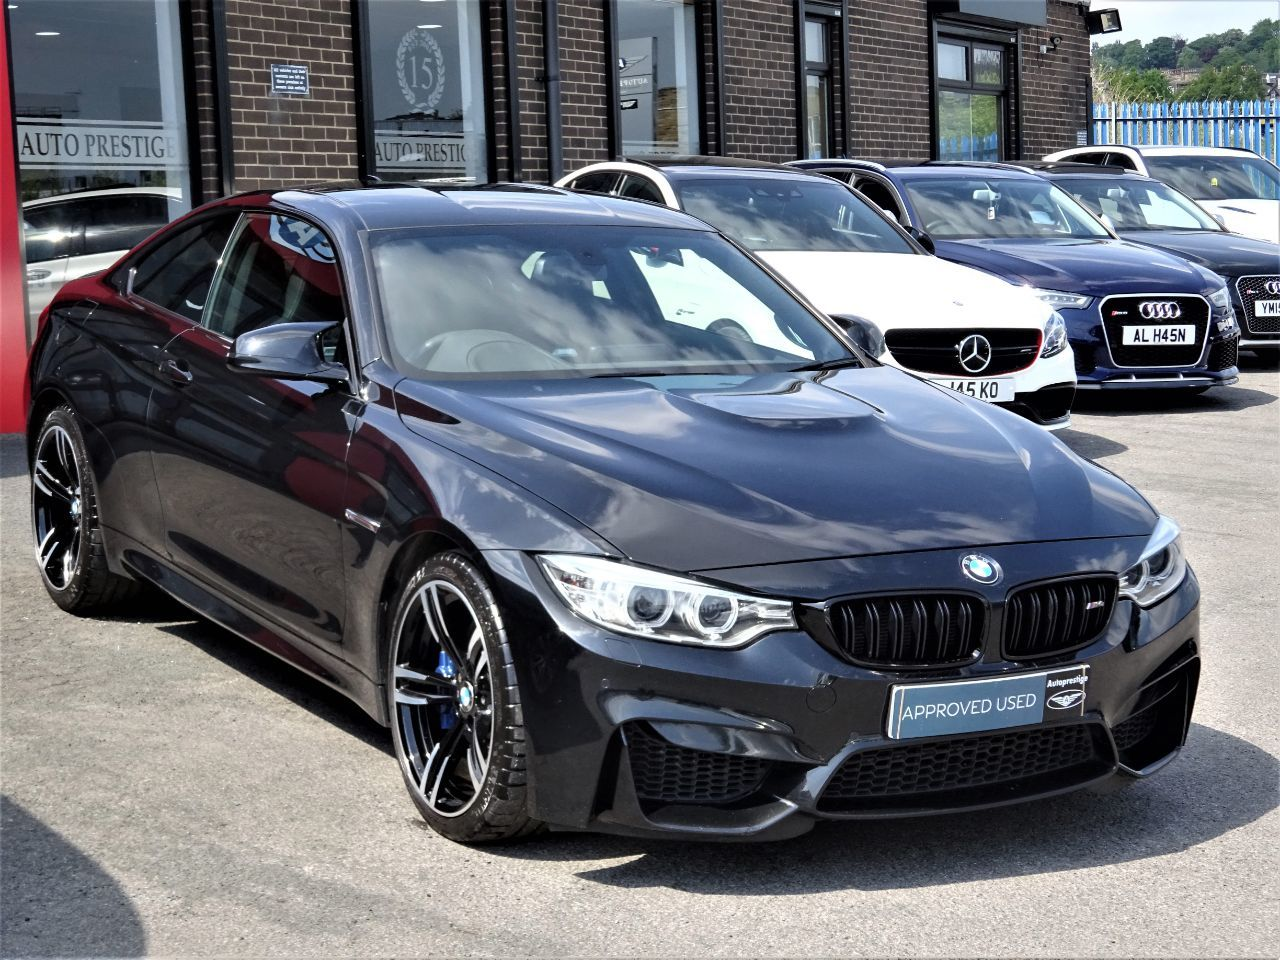 BMW M4 3.0 2dr DCT COUPE 64 REG LAST OWNER 2015 FBMWSH CHEAPEST M4 AROUND Coupe Petrol Black at Autoprestige Bradford